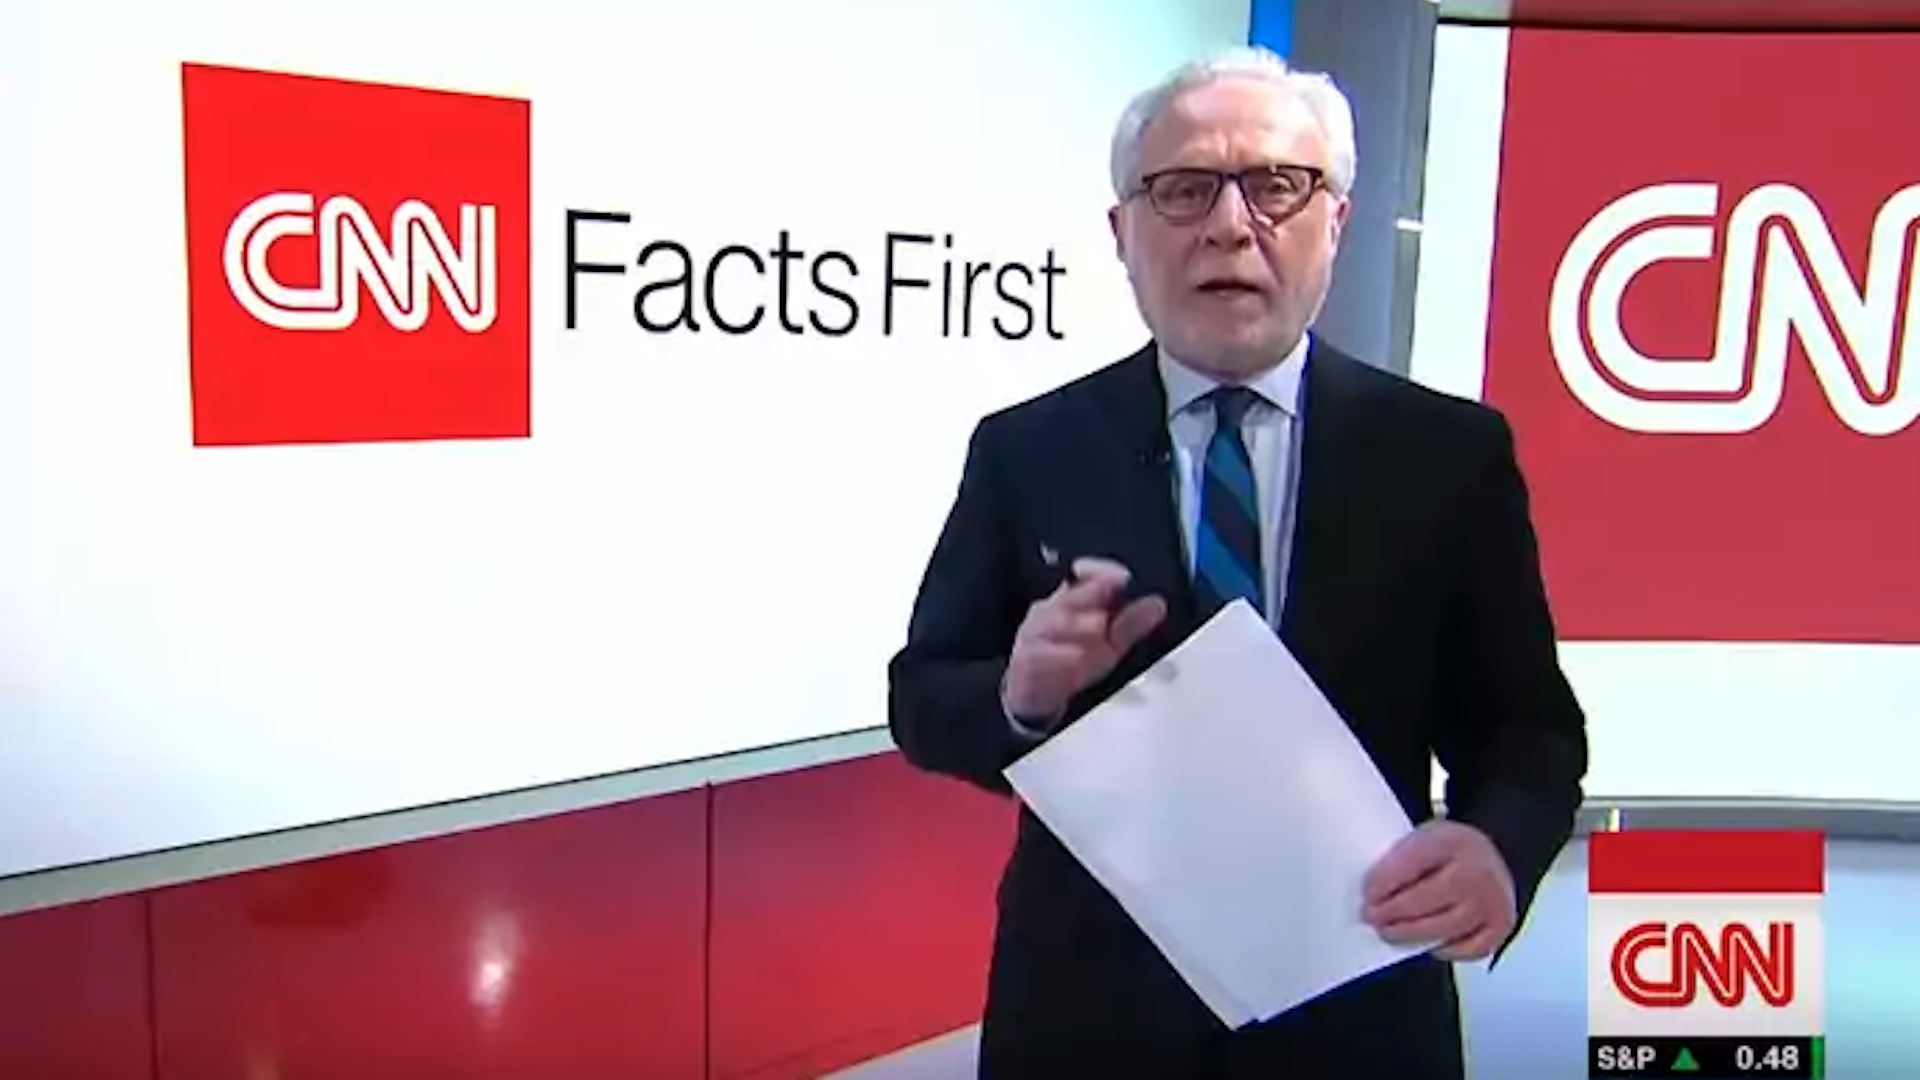 CNN stars Blitzer, Cooper, Amanpour and others fire back at Trump in day of rage